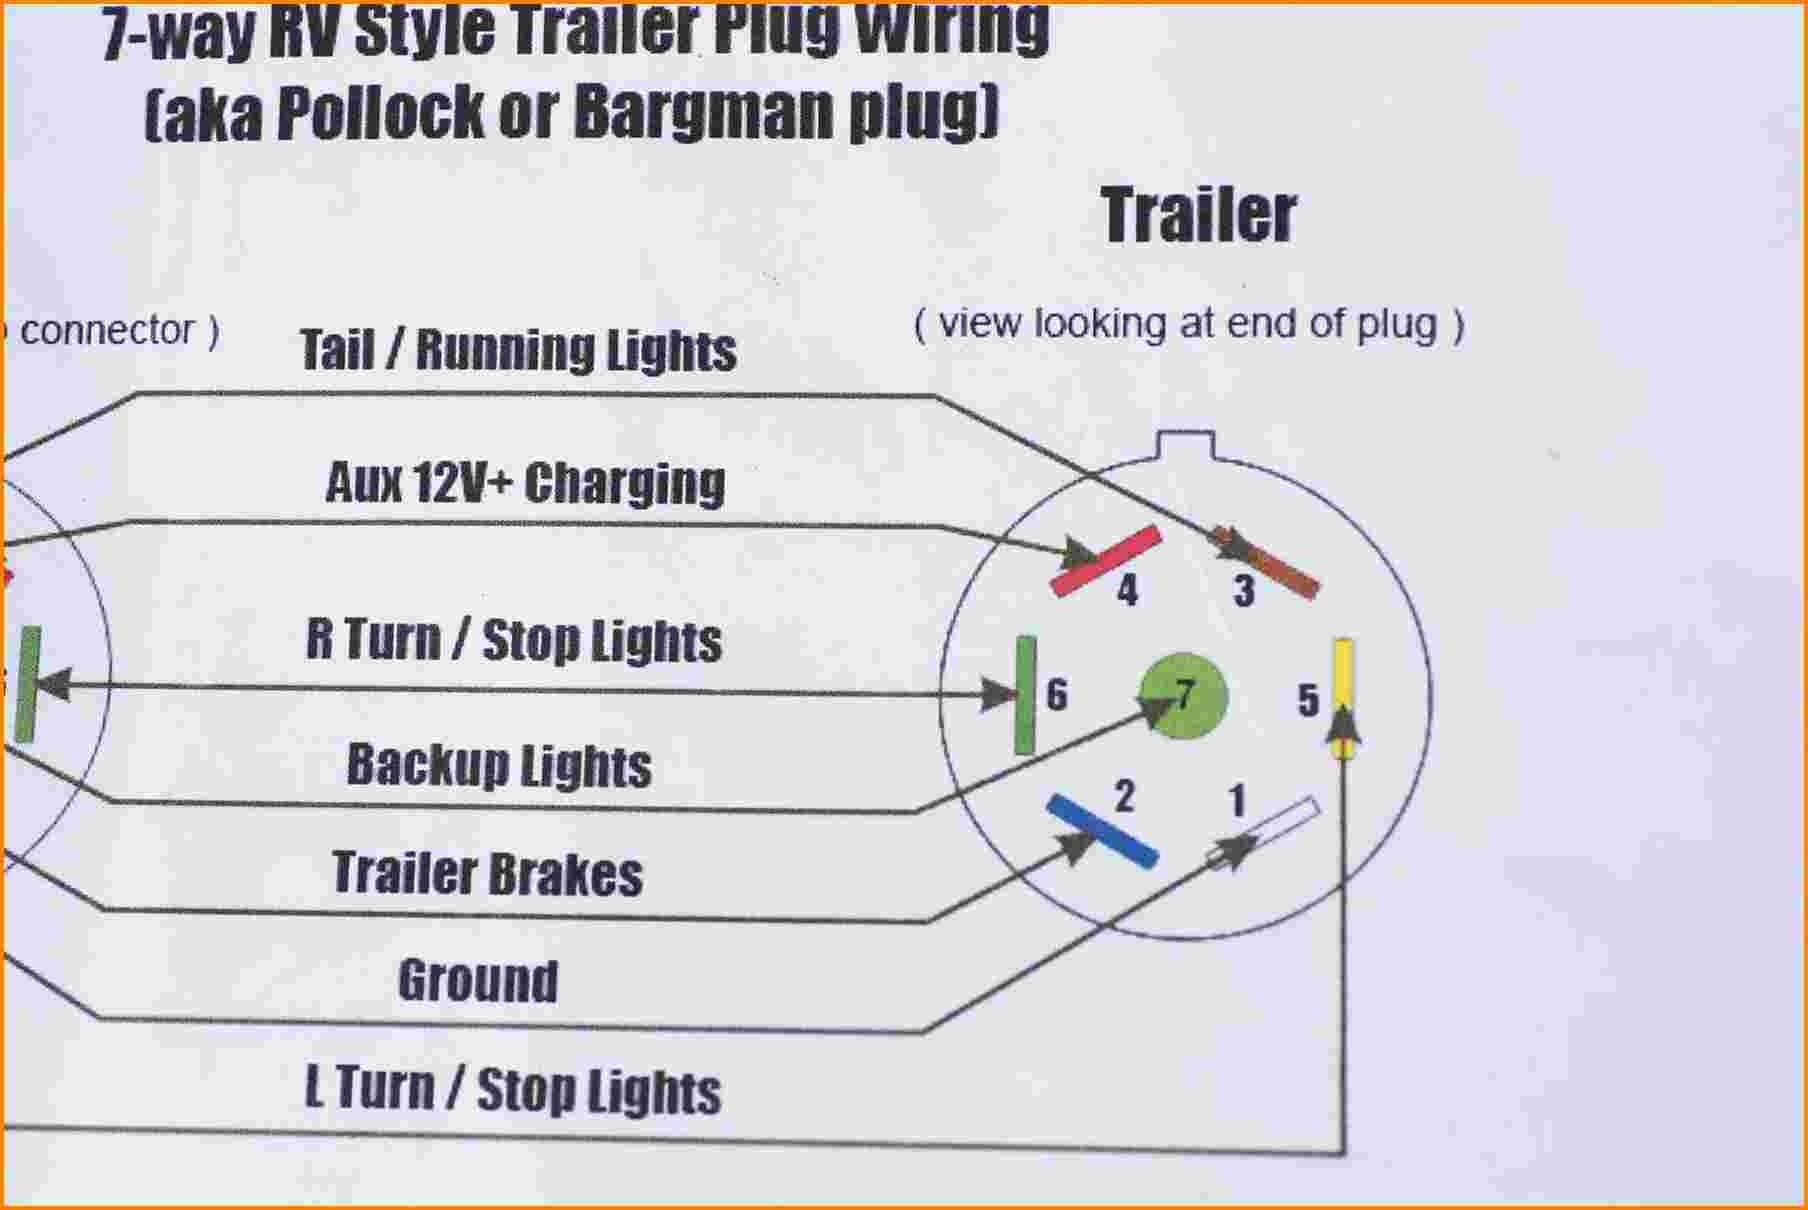 7 way trailer plug wiring diagram ford | free wiring diagram 7 wire trailer plug wiring diagram car